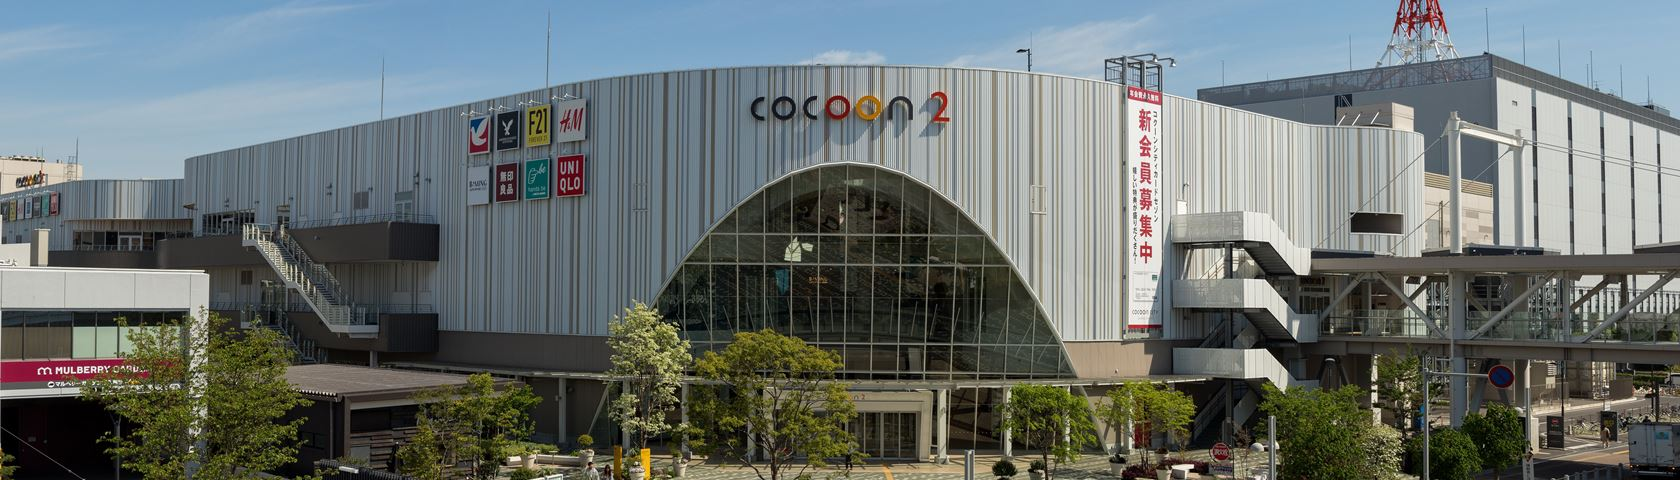 Cocoon City Mall